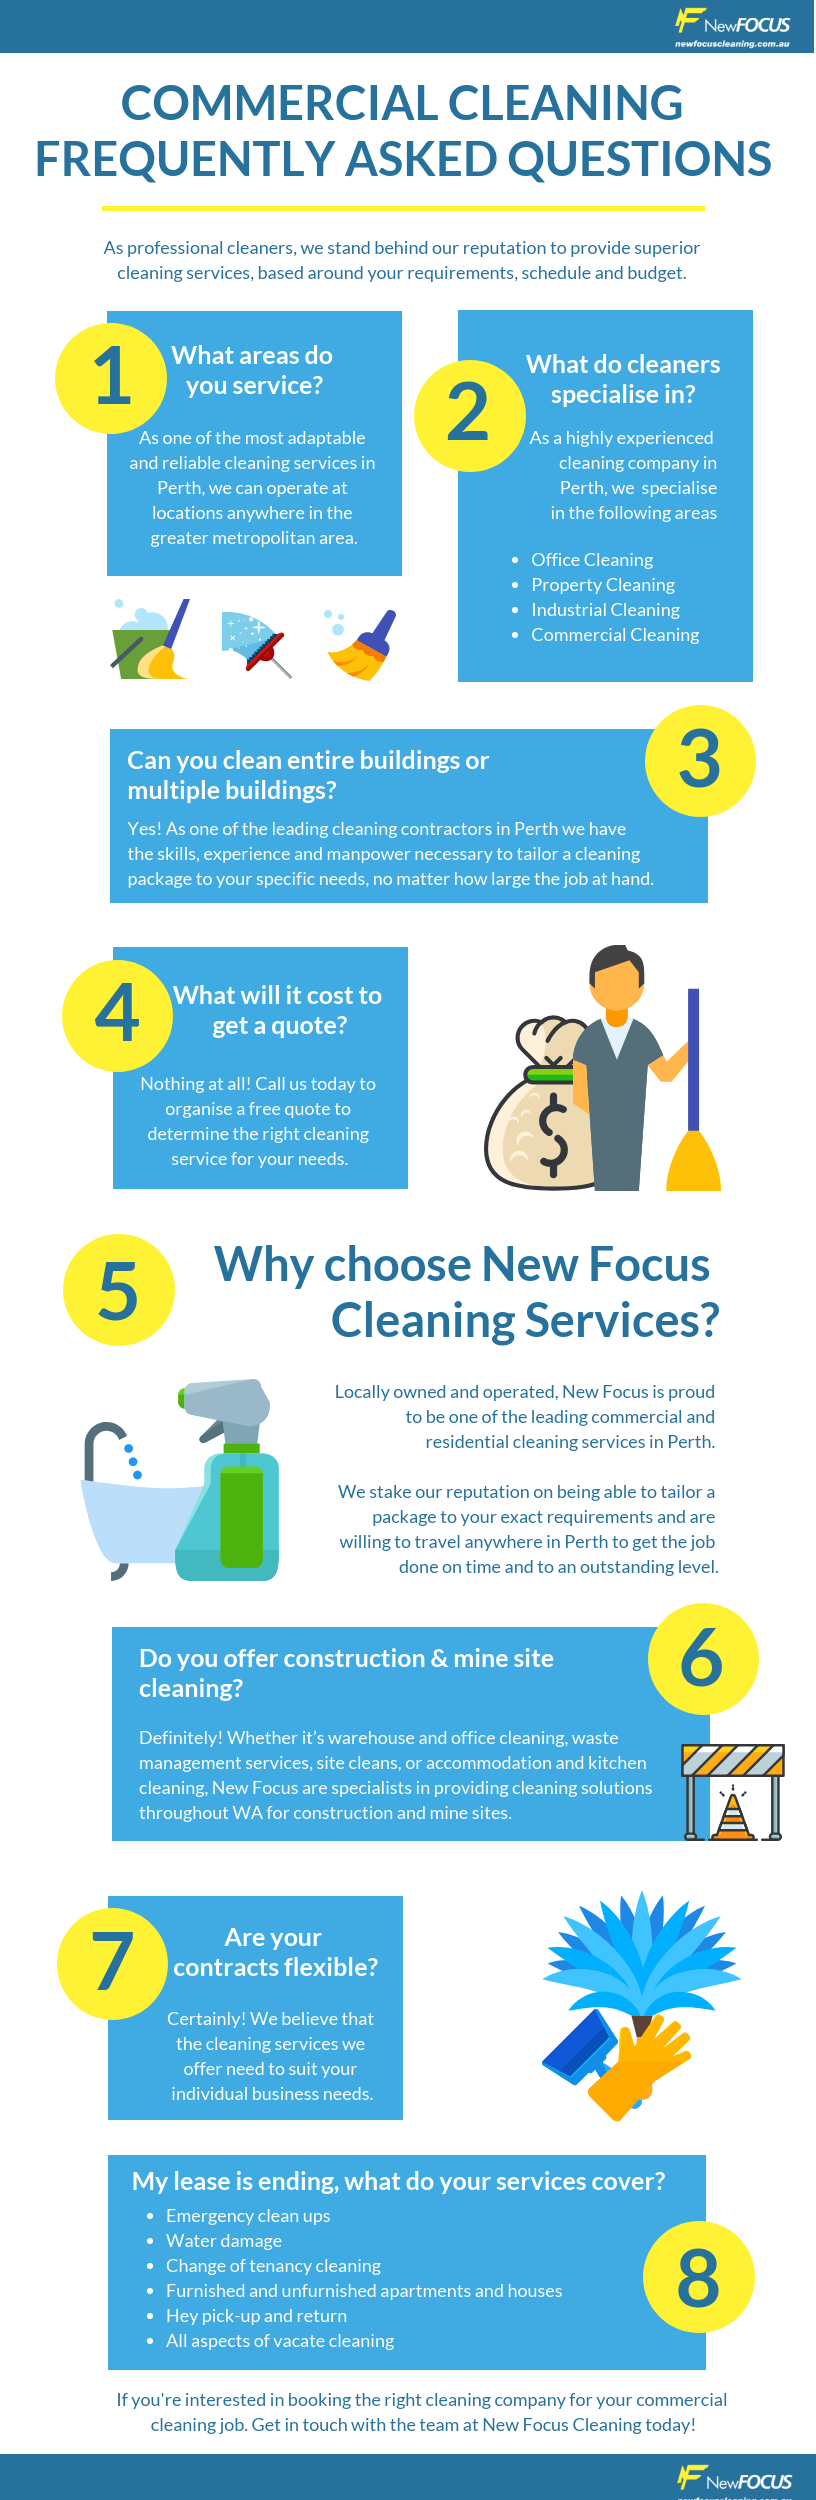 Commercial Cleaning Frequently Asked Questions